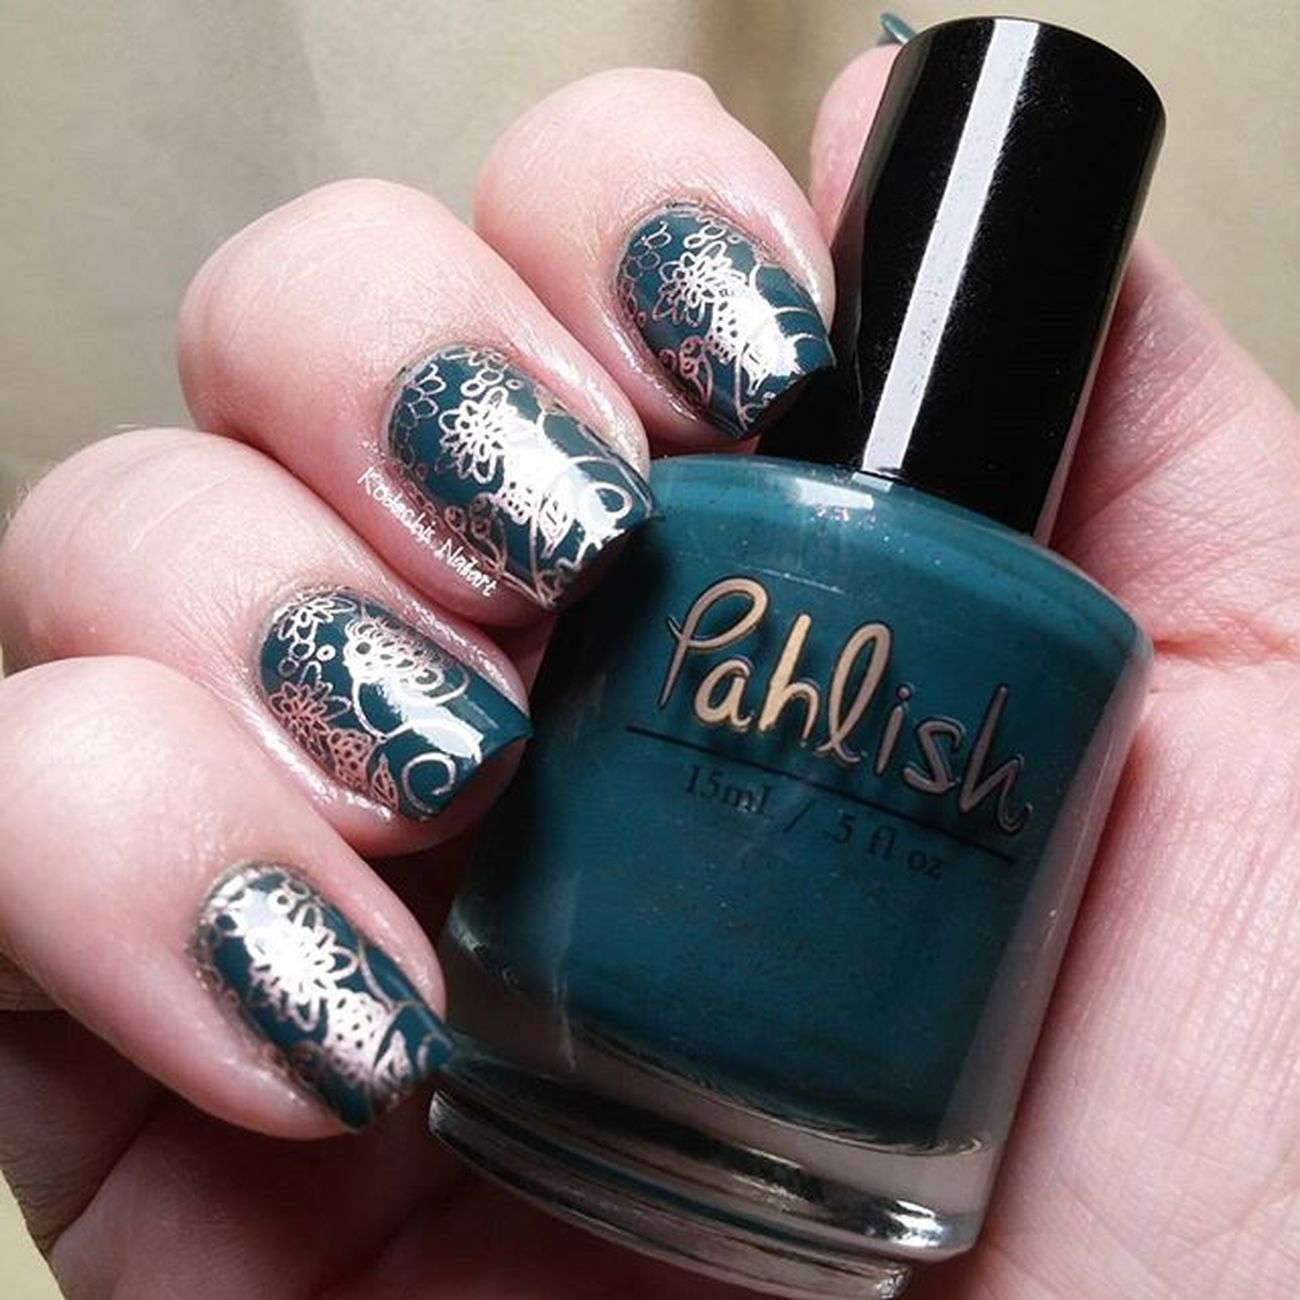 Day 15 - delicate print 31dc2015 used Pahlish - This song is ending, Essie penny talk and Uberchicbeauty plate Itrustindiepolish